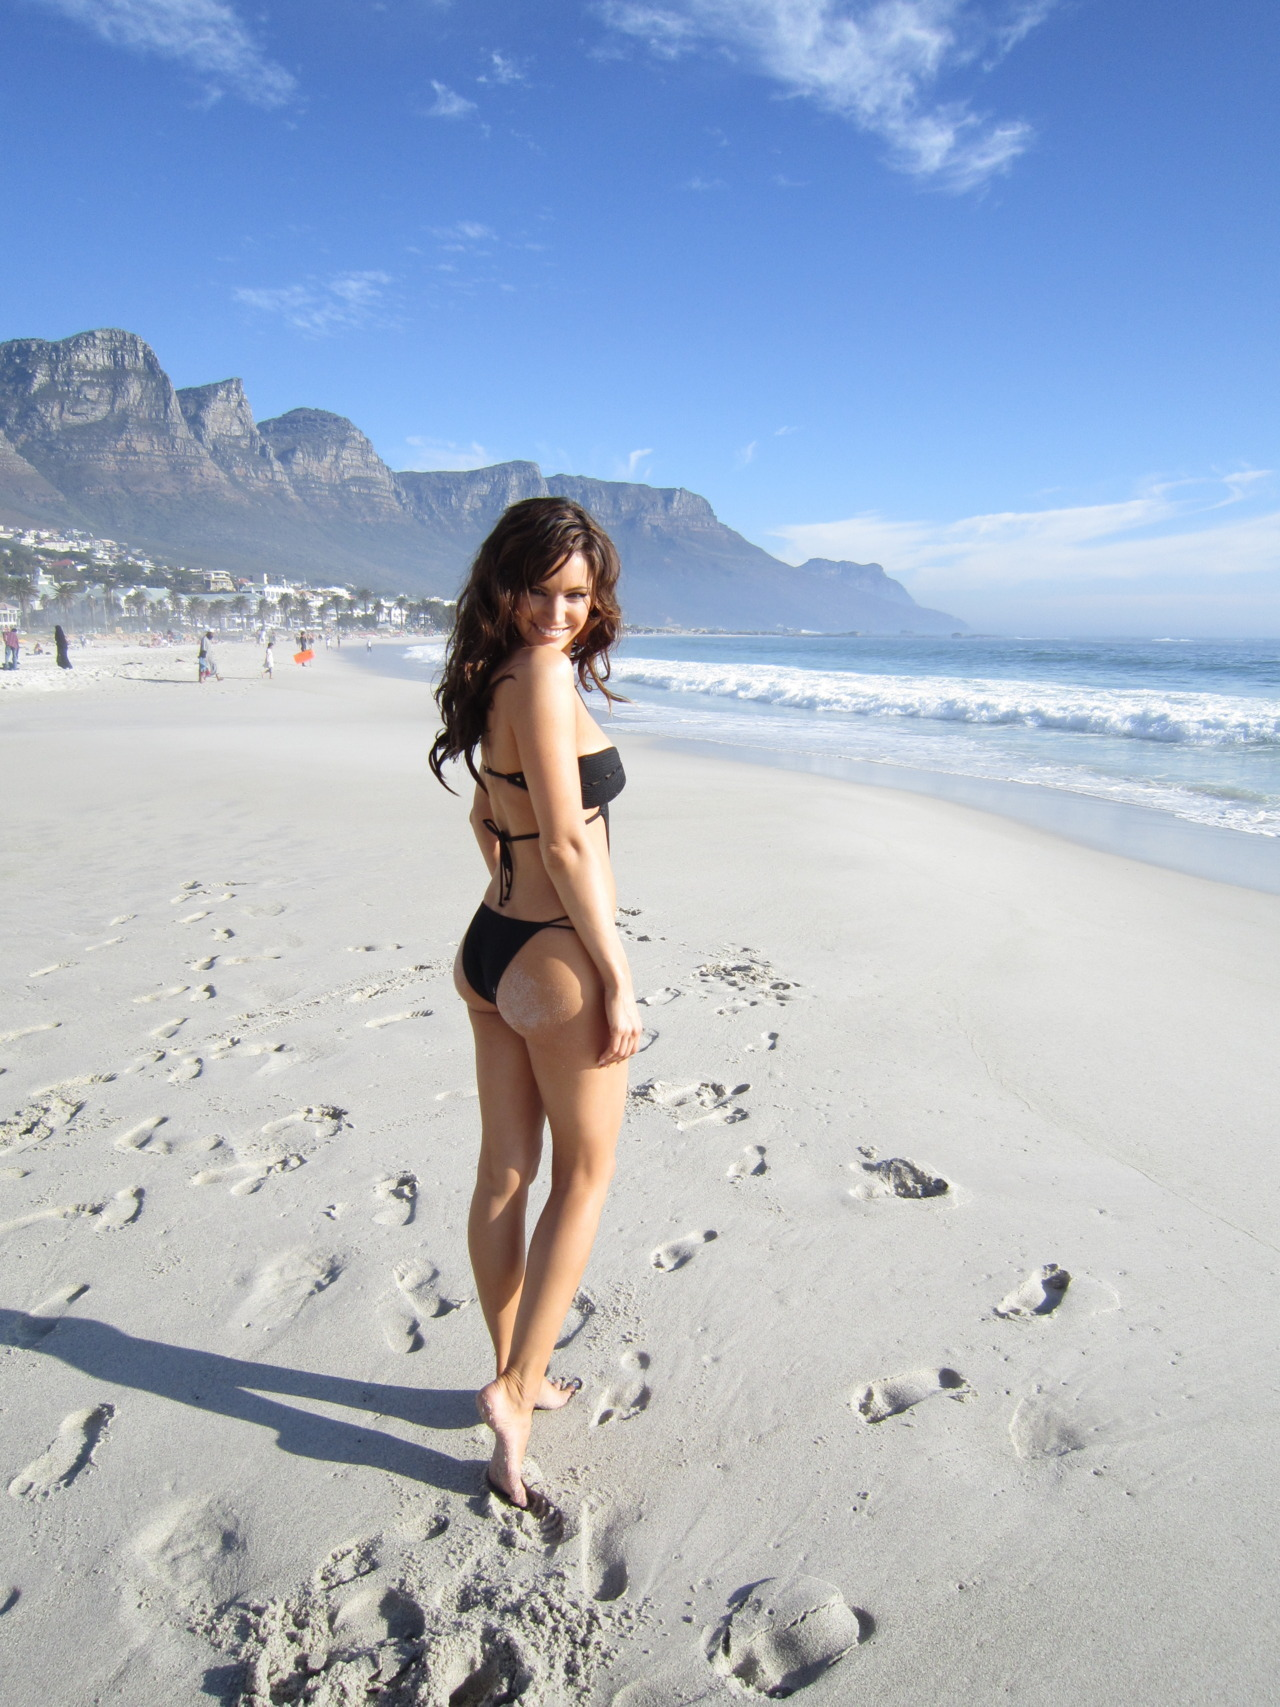 iamkellybrook:  On a photoshoot in Cape Town